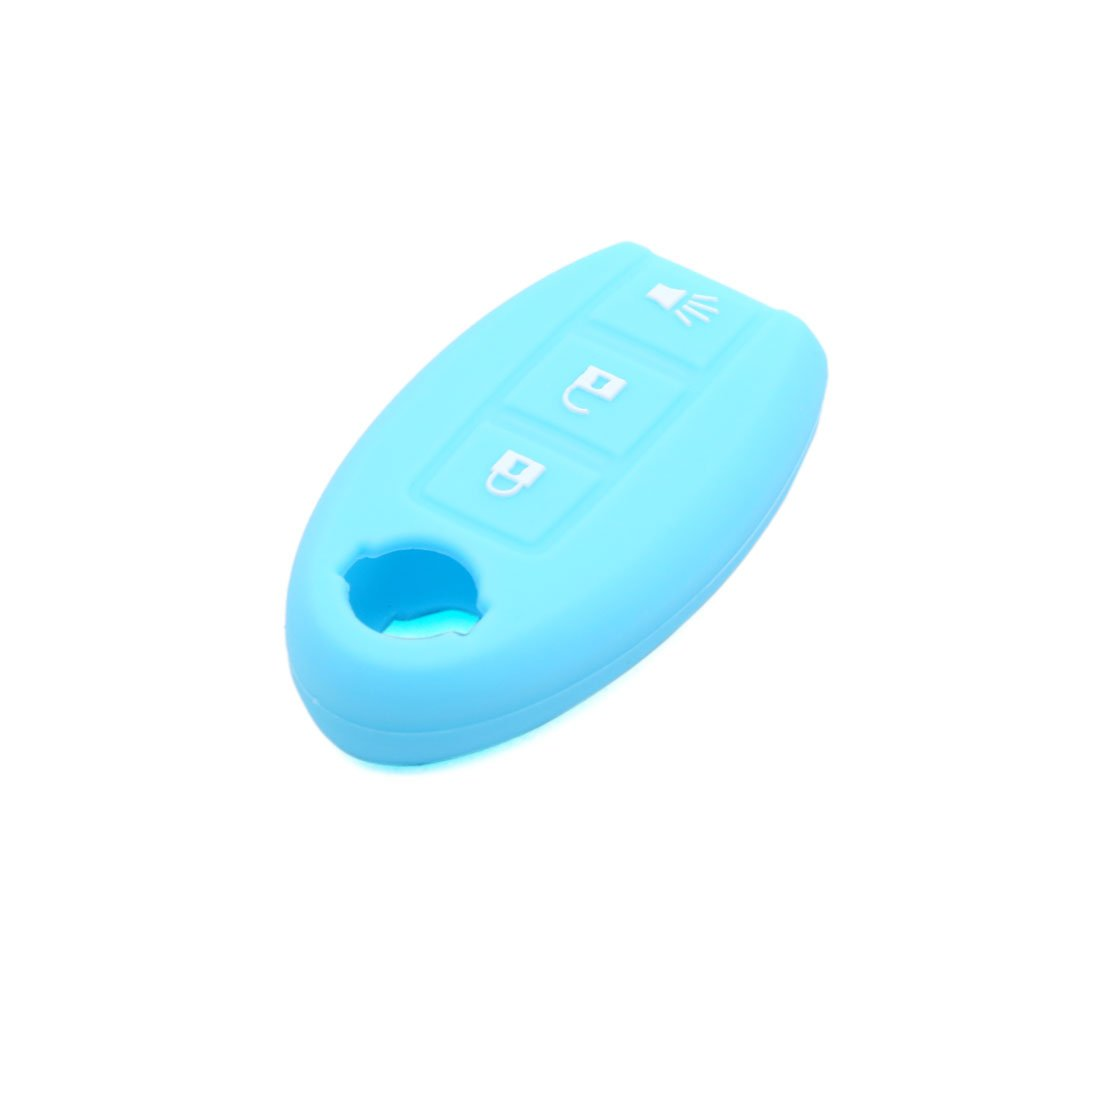 uxcell Blue Silicone Three Button Car Remote Key Cover Case Protective for Nissan Sylphy Sunny March Qashqai Teana XTRAIL Murao a18010800ux0044